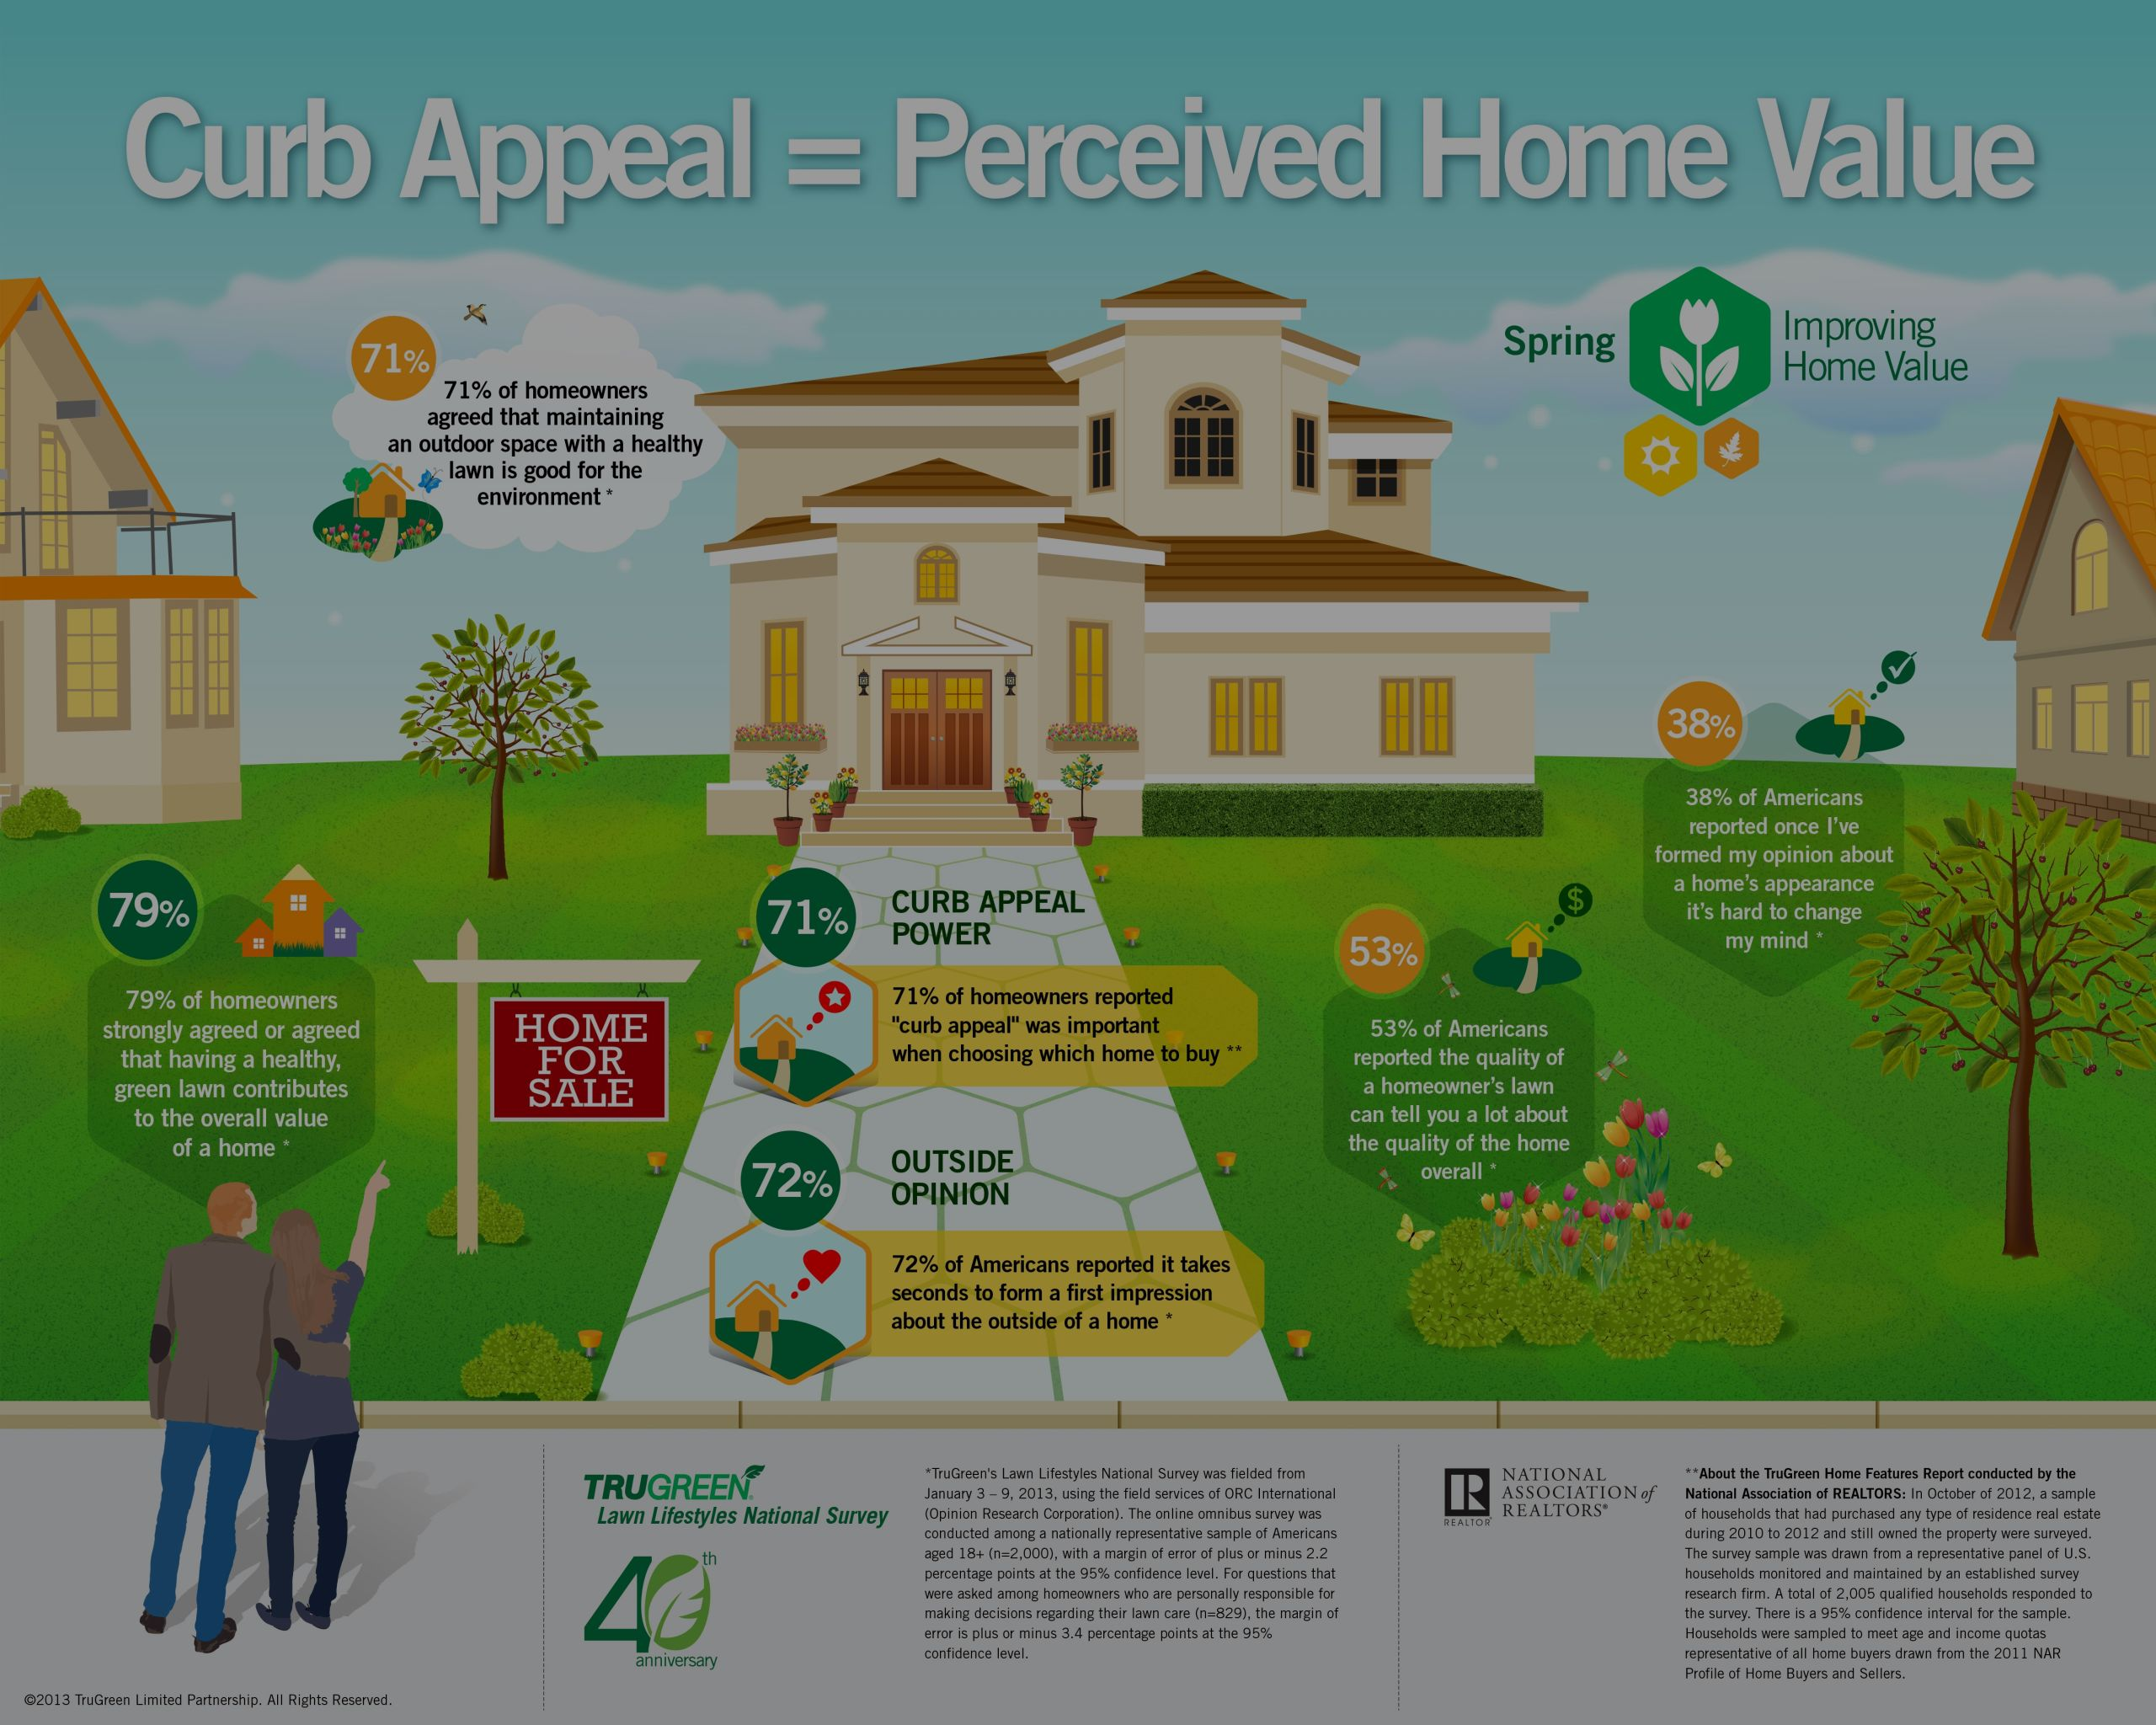 Curb Appeal = Percieved Home Value